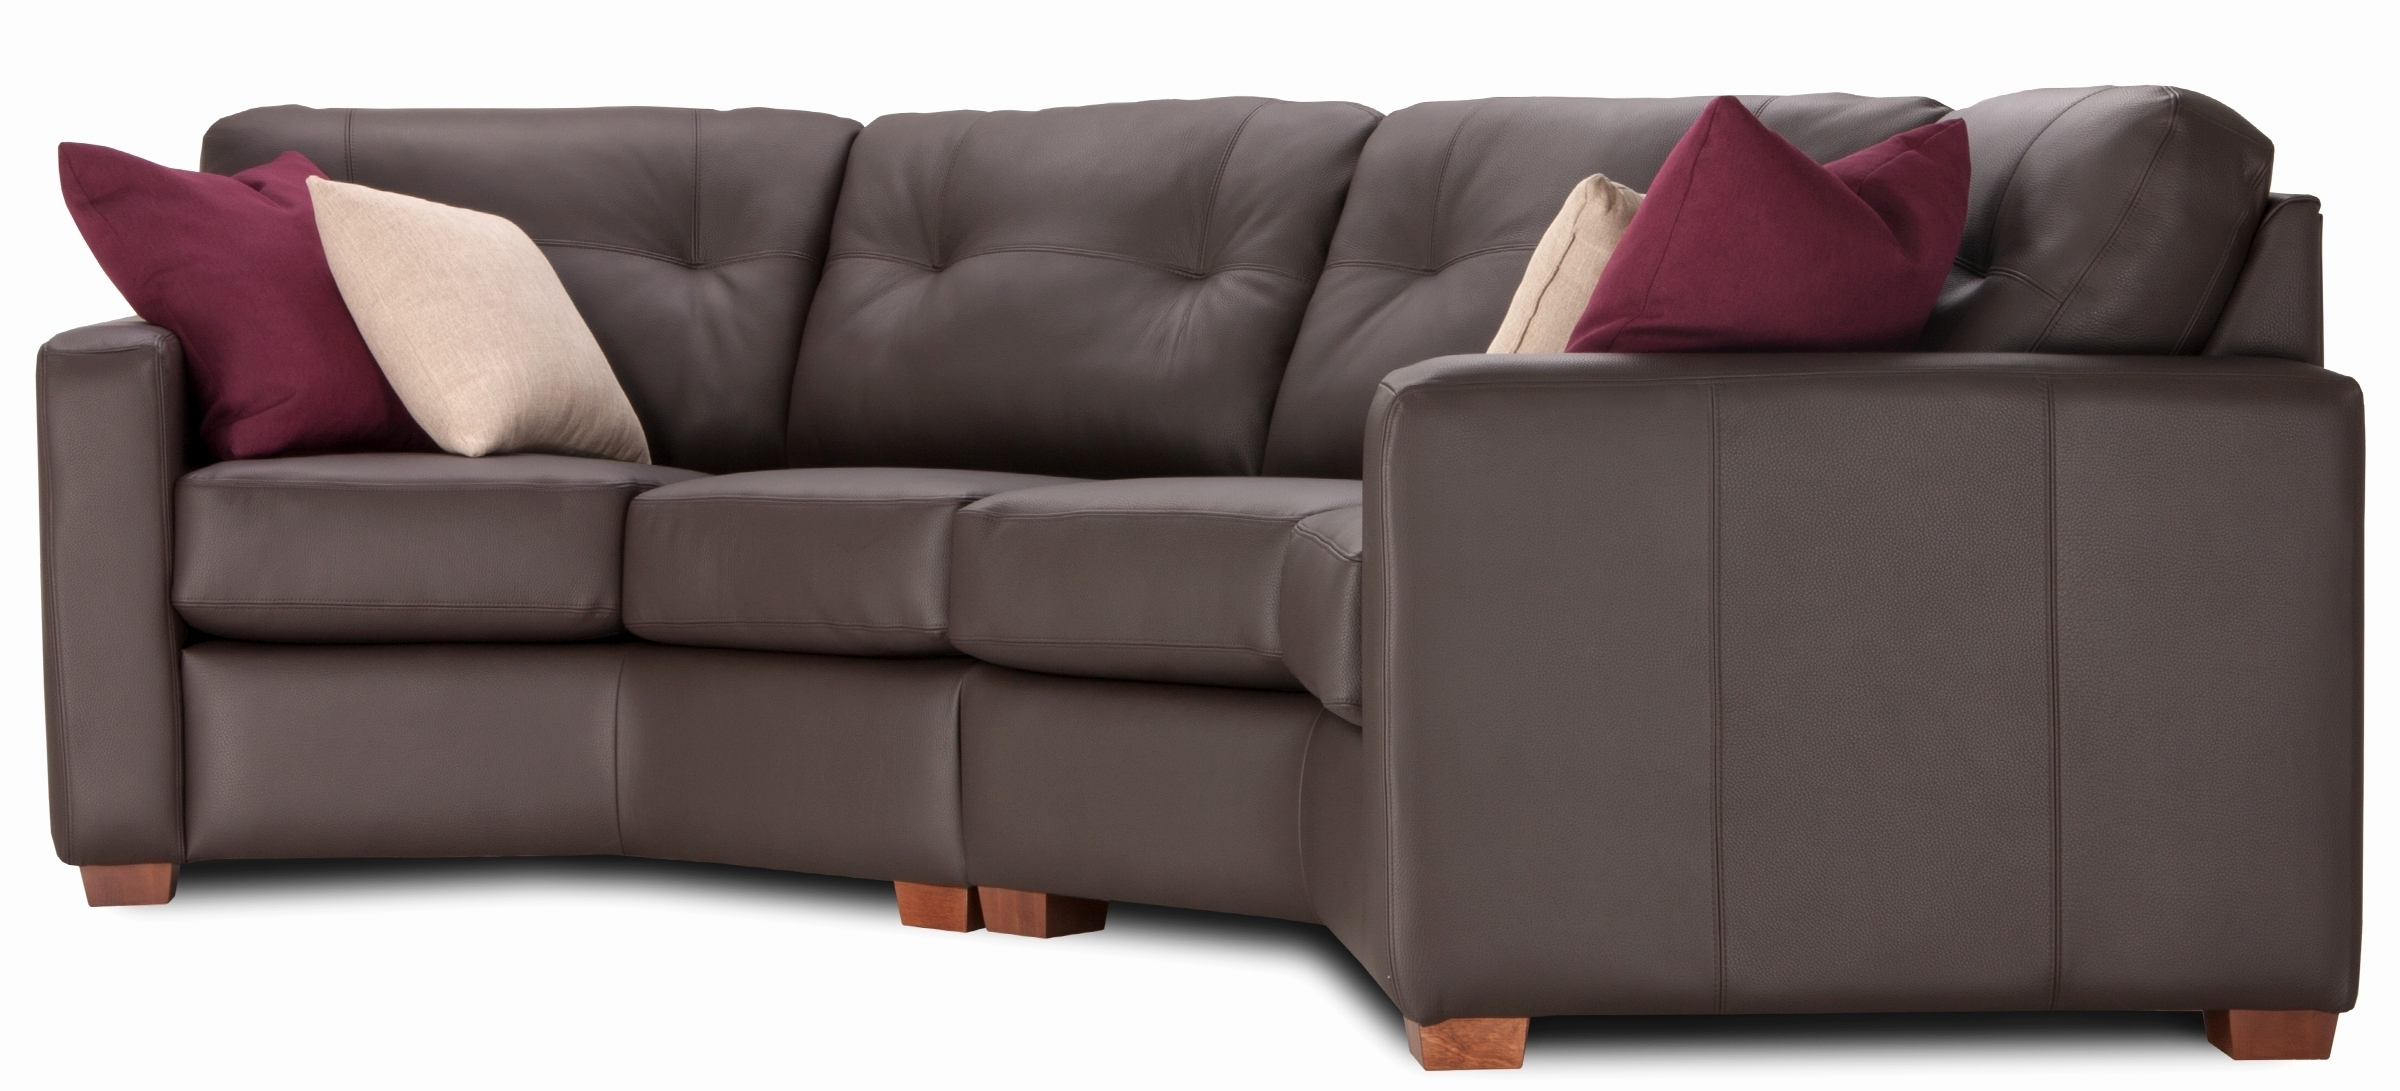 Current Fresh High Point Sofa 2018 – Couches And Sofas Ideas Regarding High Point Nc Sectional Sofas (View 14 of 20)